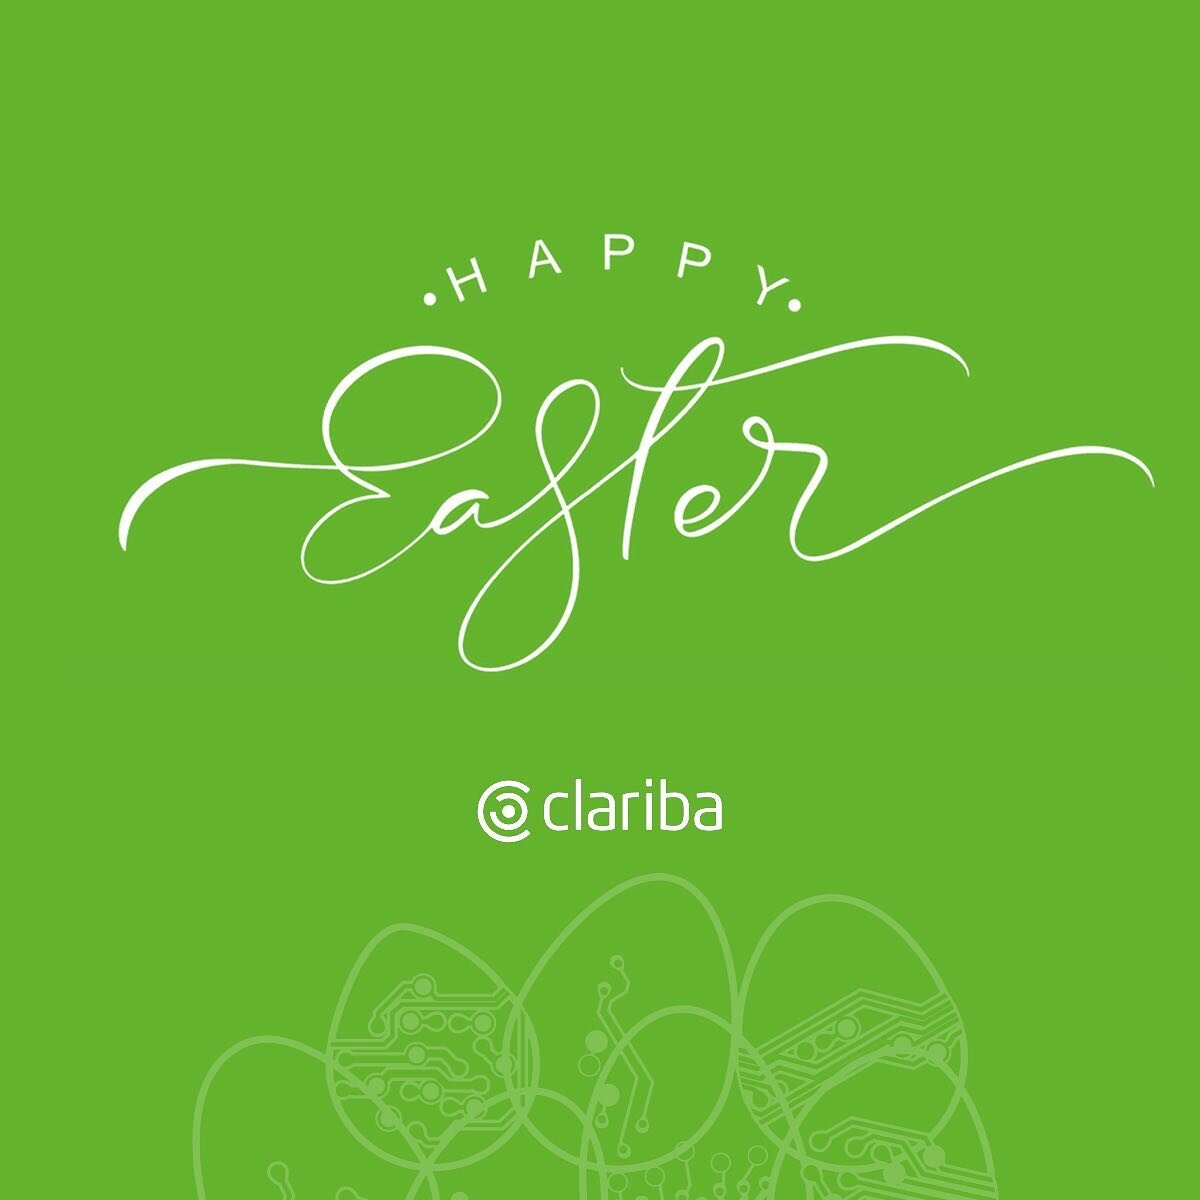 Clariba team wishes you and your family Happy Easter!🐰 #easter #easter2021 #happyeaster